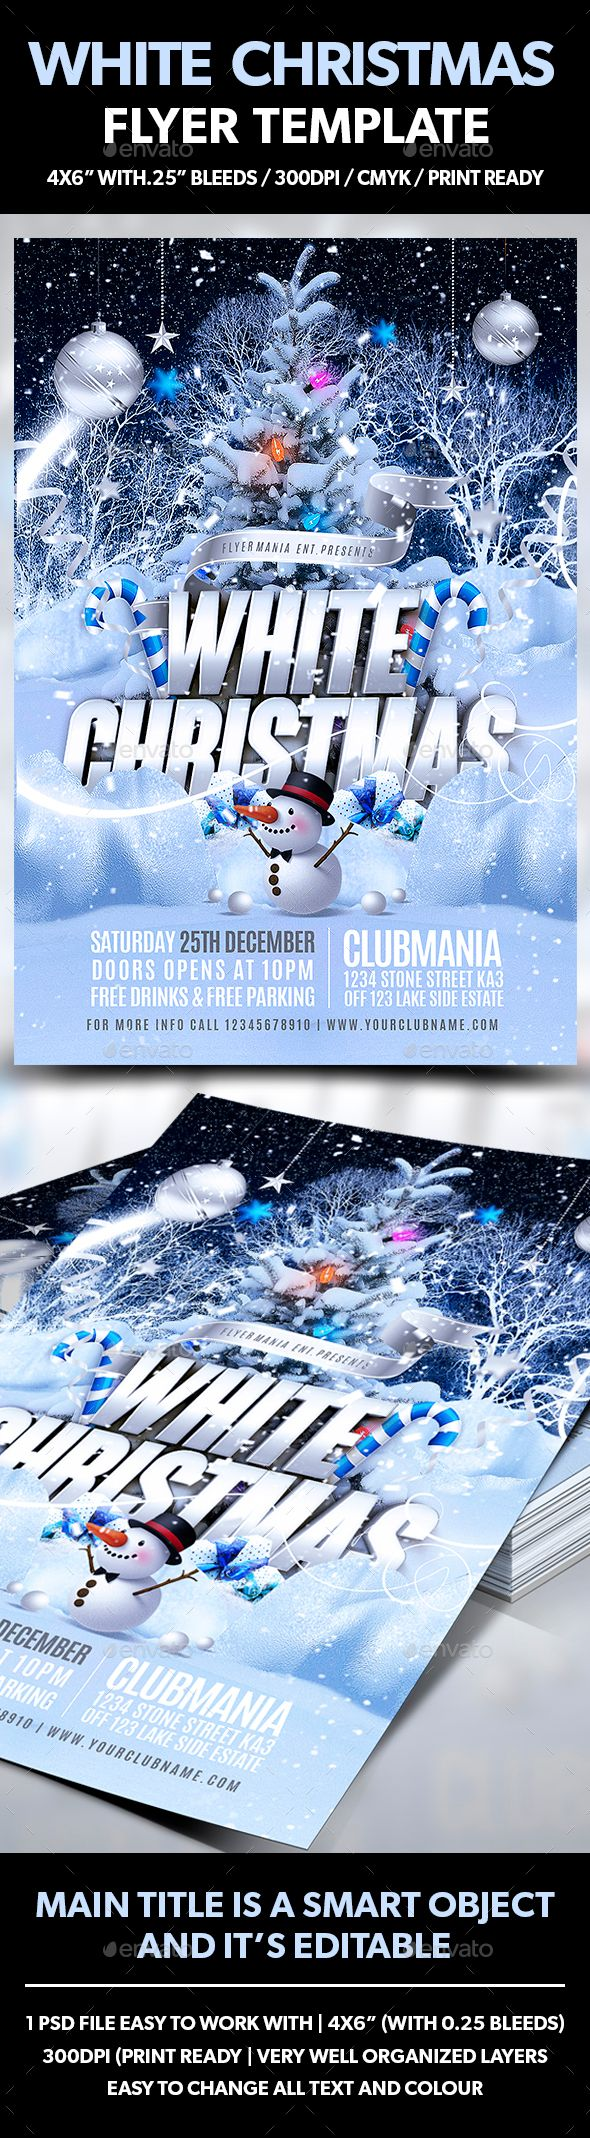 White Christmas Flyer Template PSD #design #xmas Download: http://graphicriver.net/item/white-christmas-flyer-template/13429561?ref=ksioks